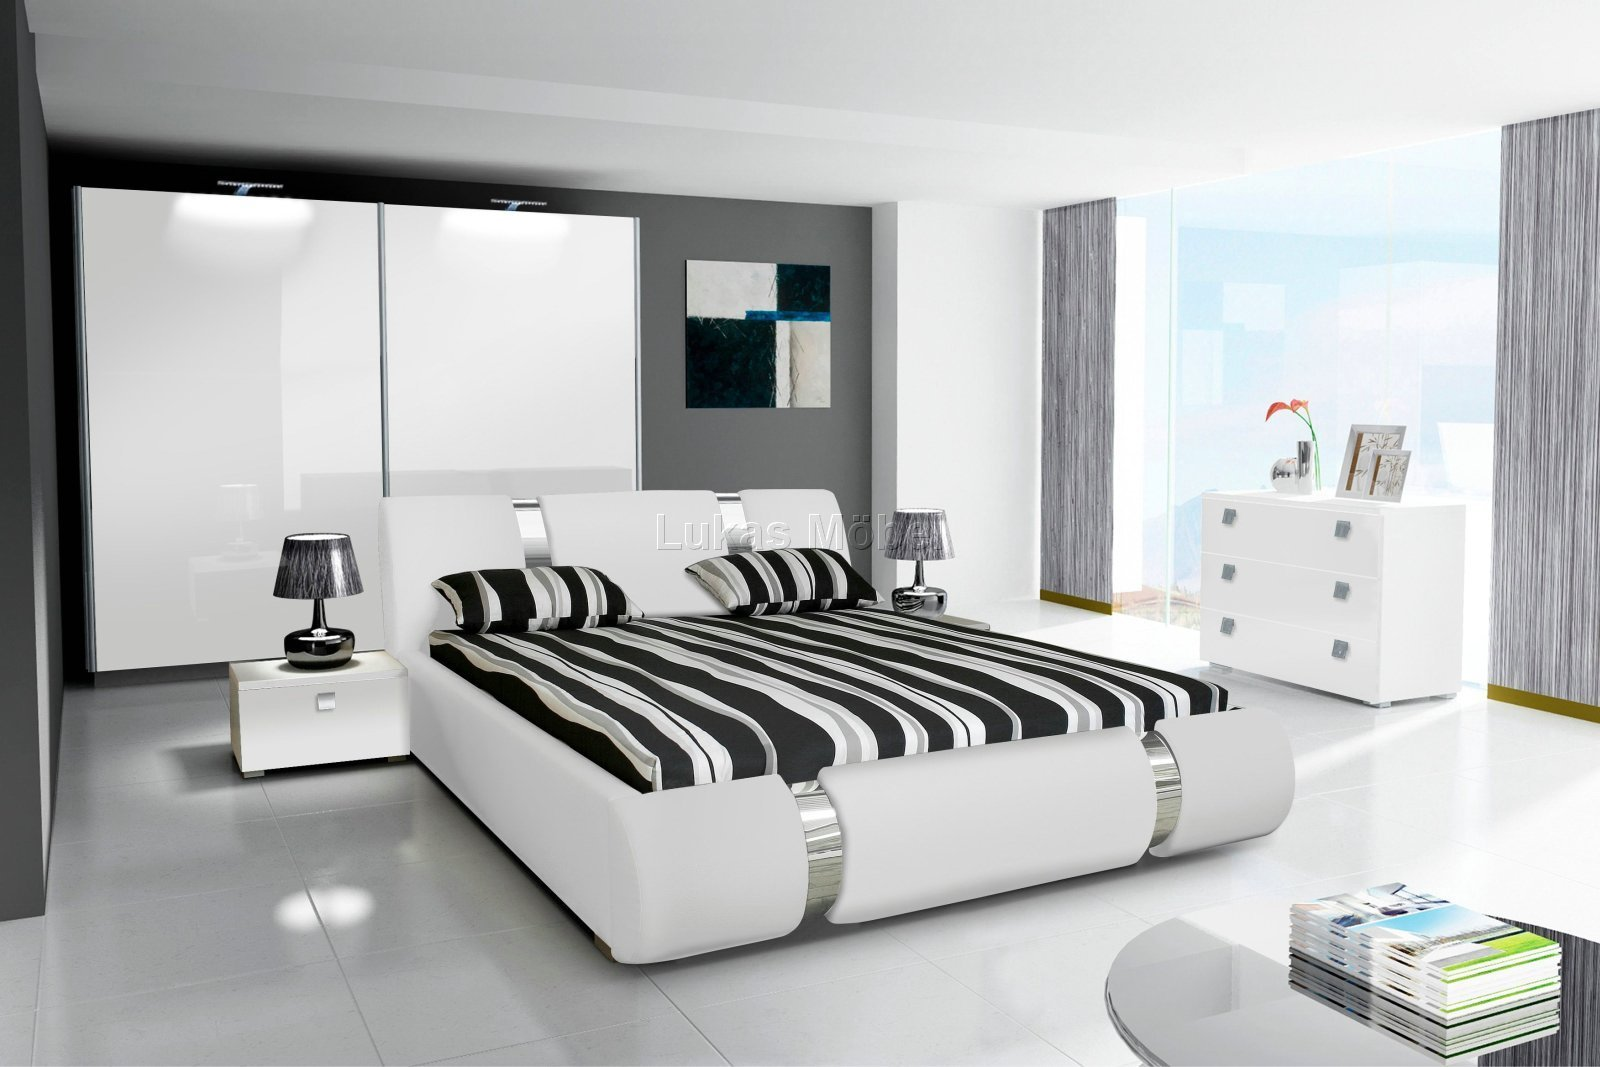 komplett schlafzimmer novalis hochglanz schwarz wei. Black Bedroom Furniture Sets. Home Design Ideas